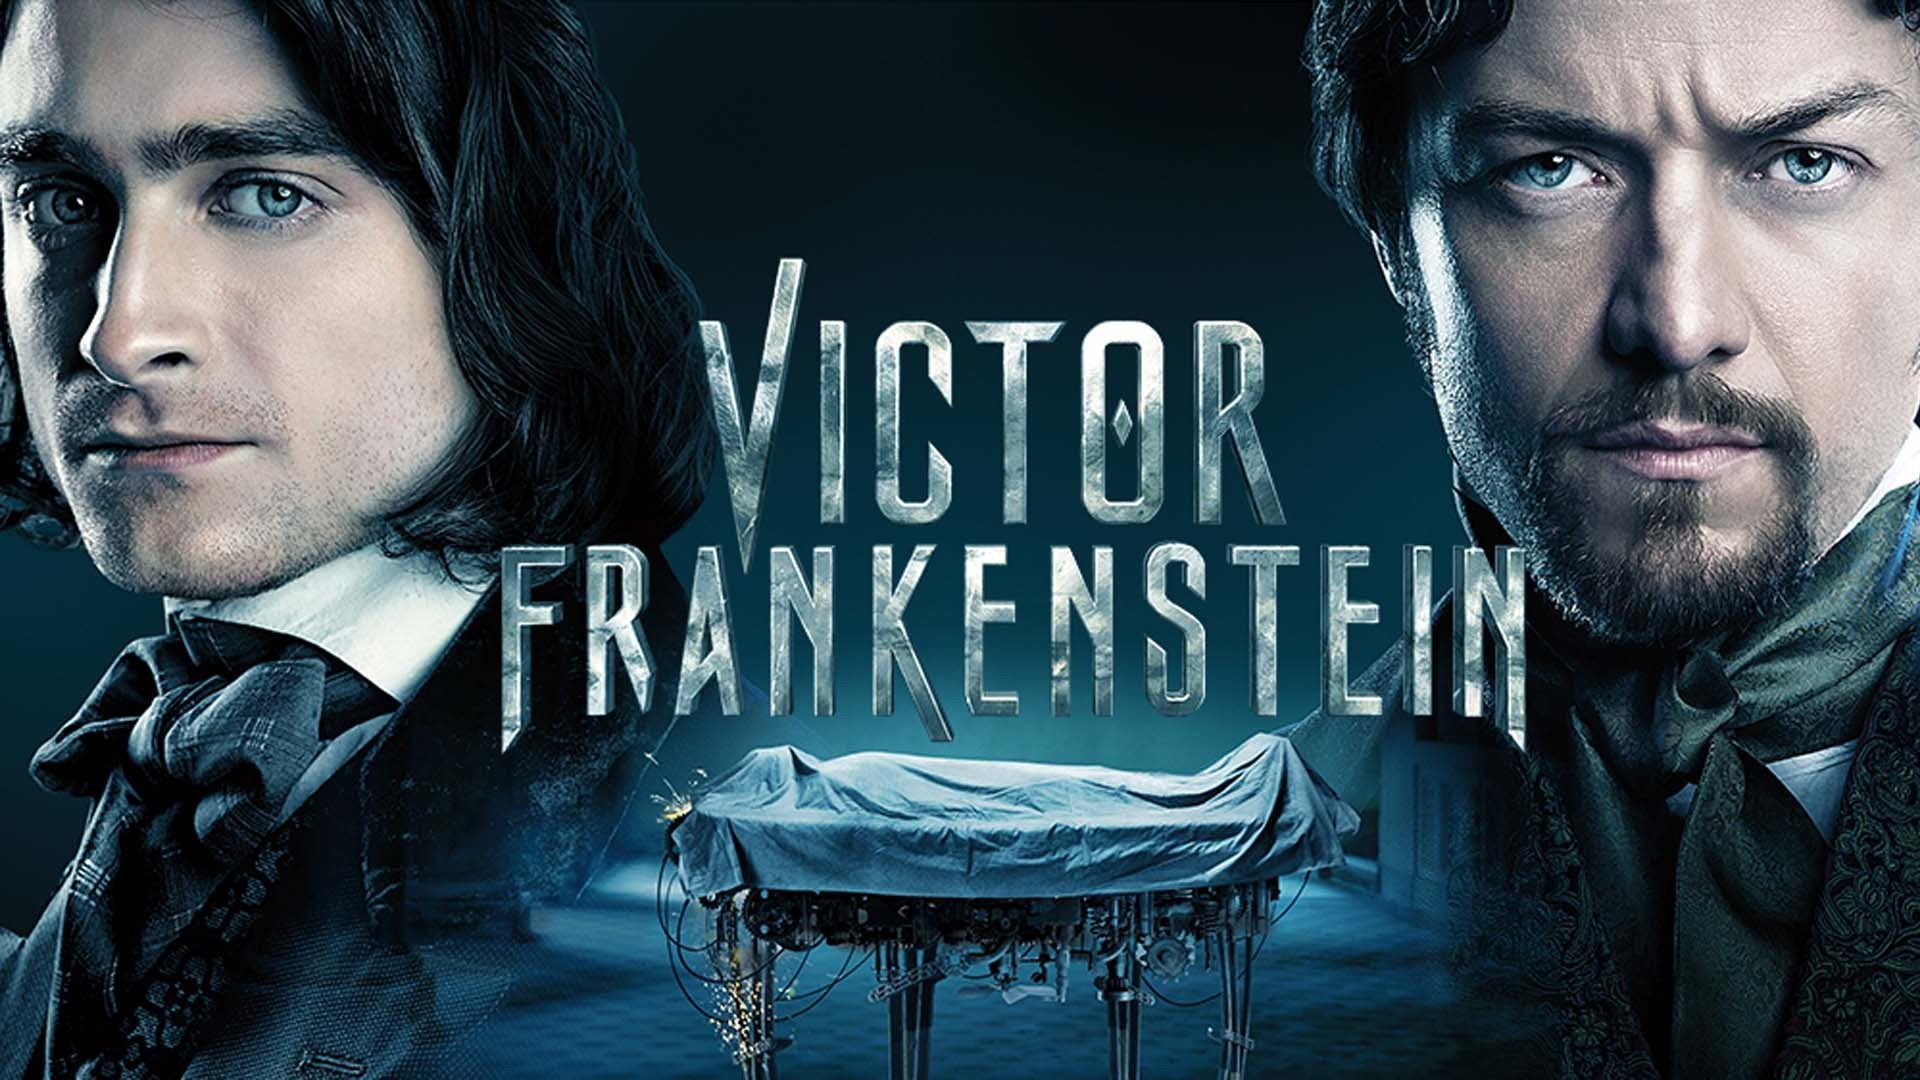 Victor Frankenstein Backgrounds